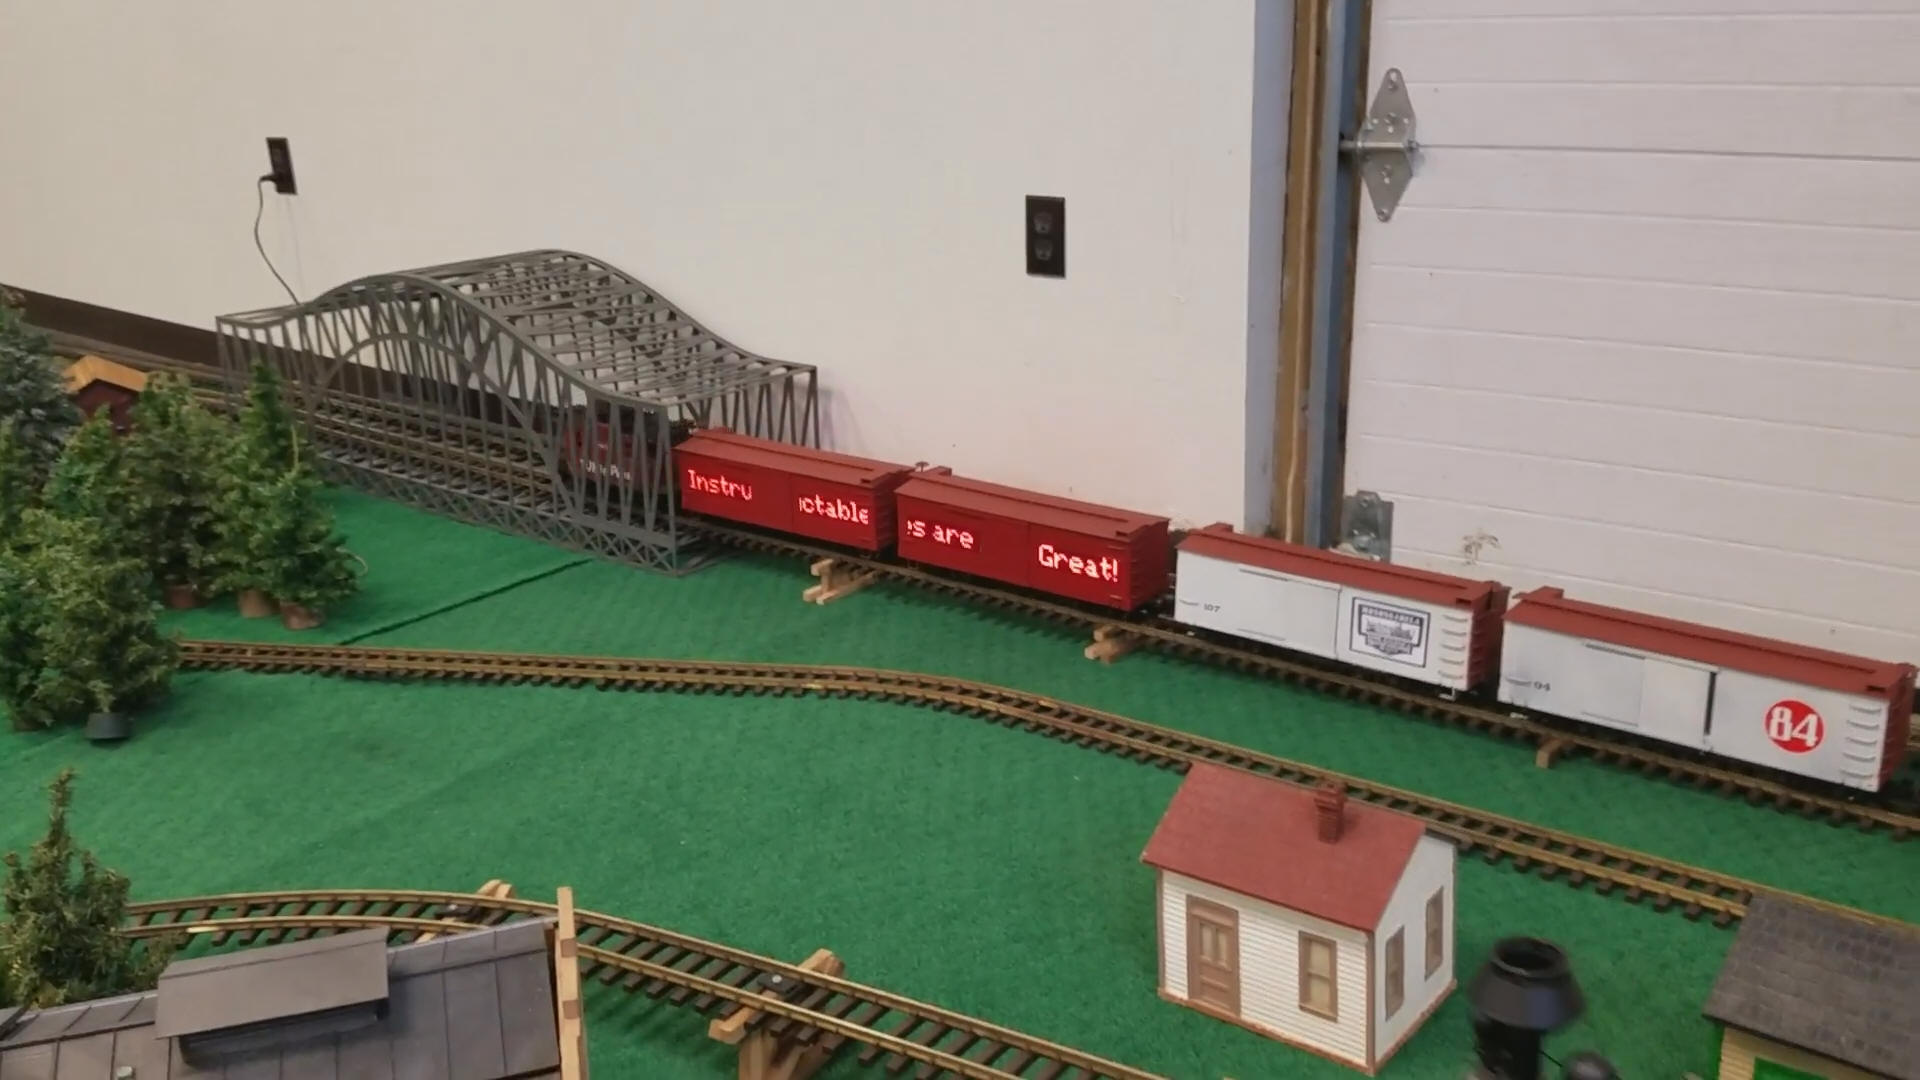 Creating moving, wirelessly-controlled train LED displays with Arduino